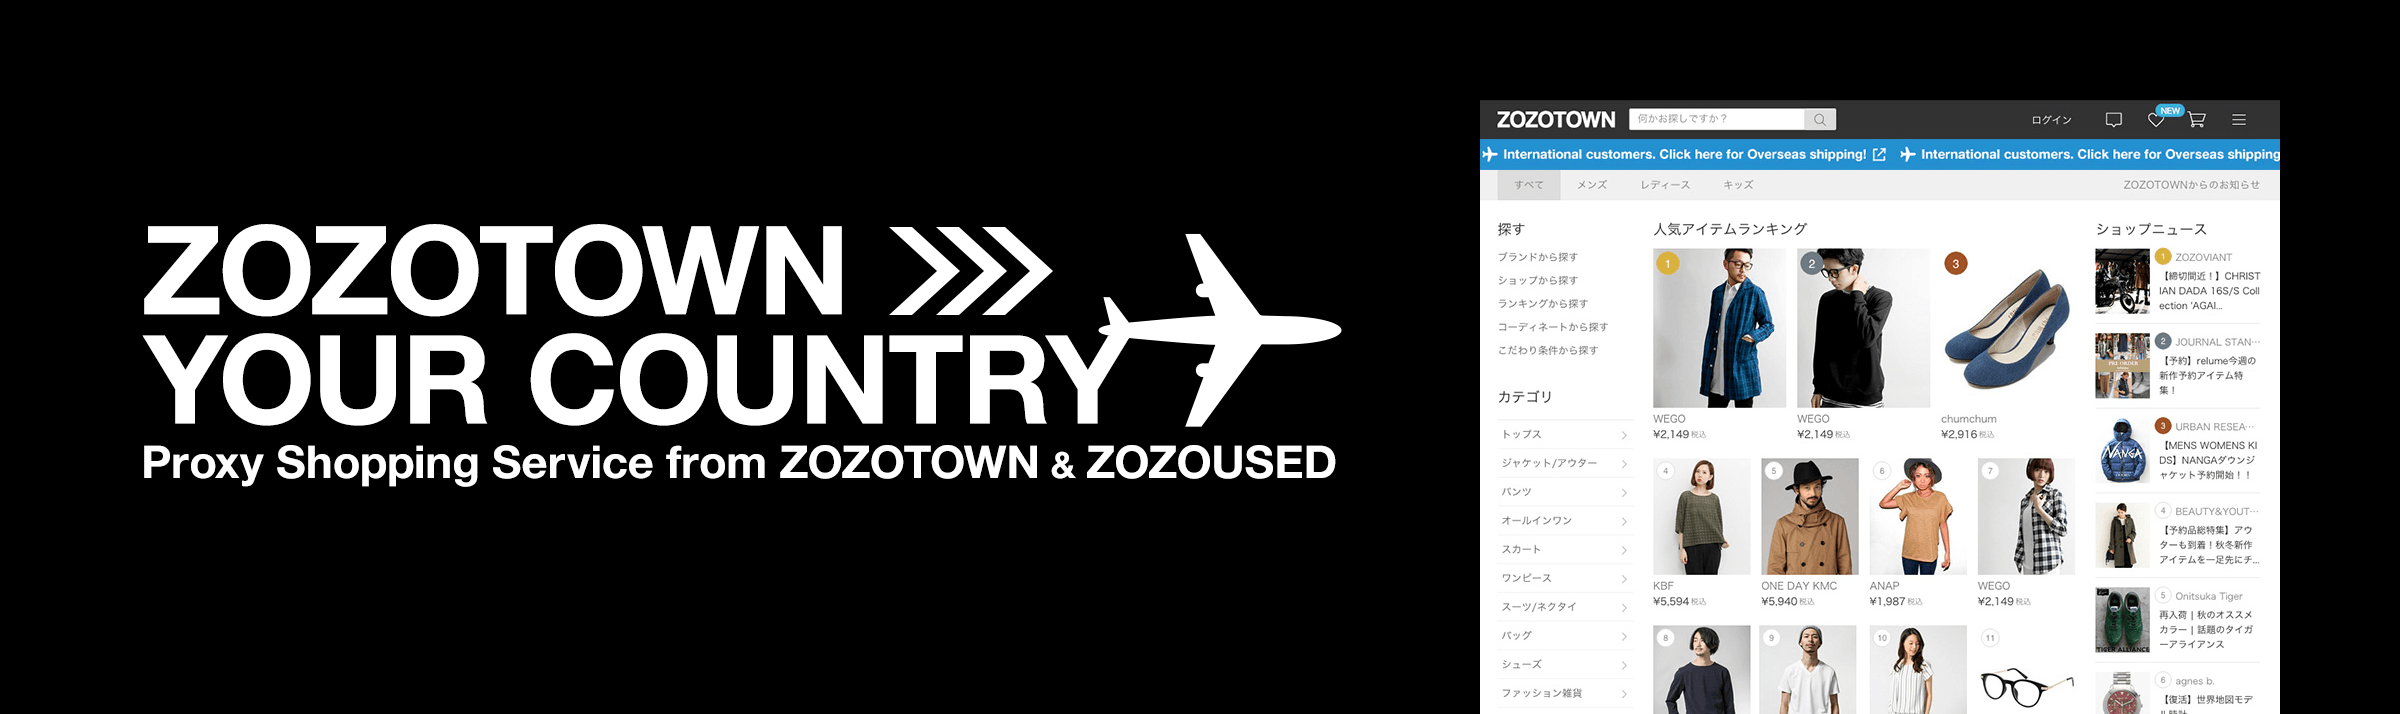 ZOZOTOWN > YOUR COUNTRY - Proxy Shopping Service from ZOZOTOWN and ZOZOUSED